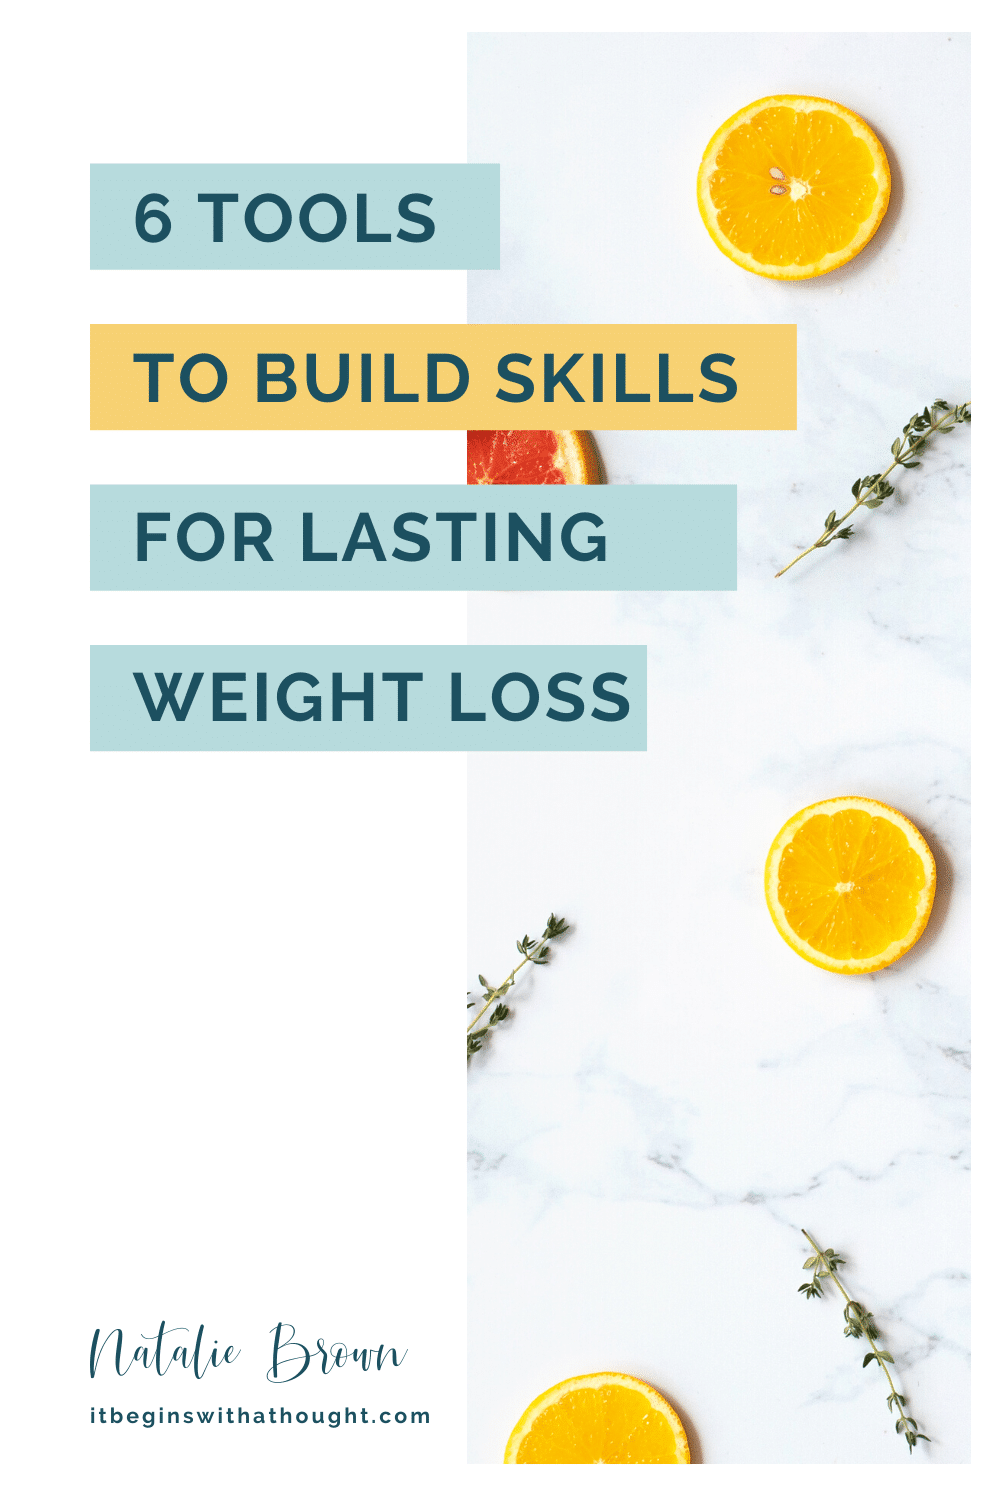 6 tools for lasting weight loss